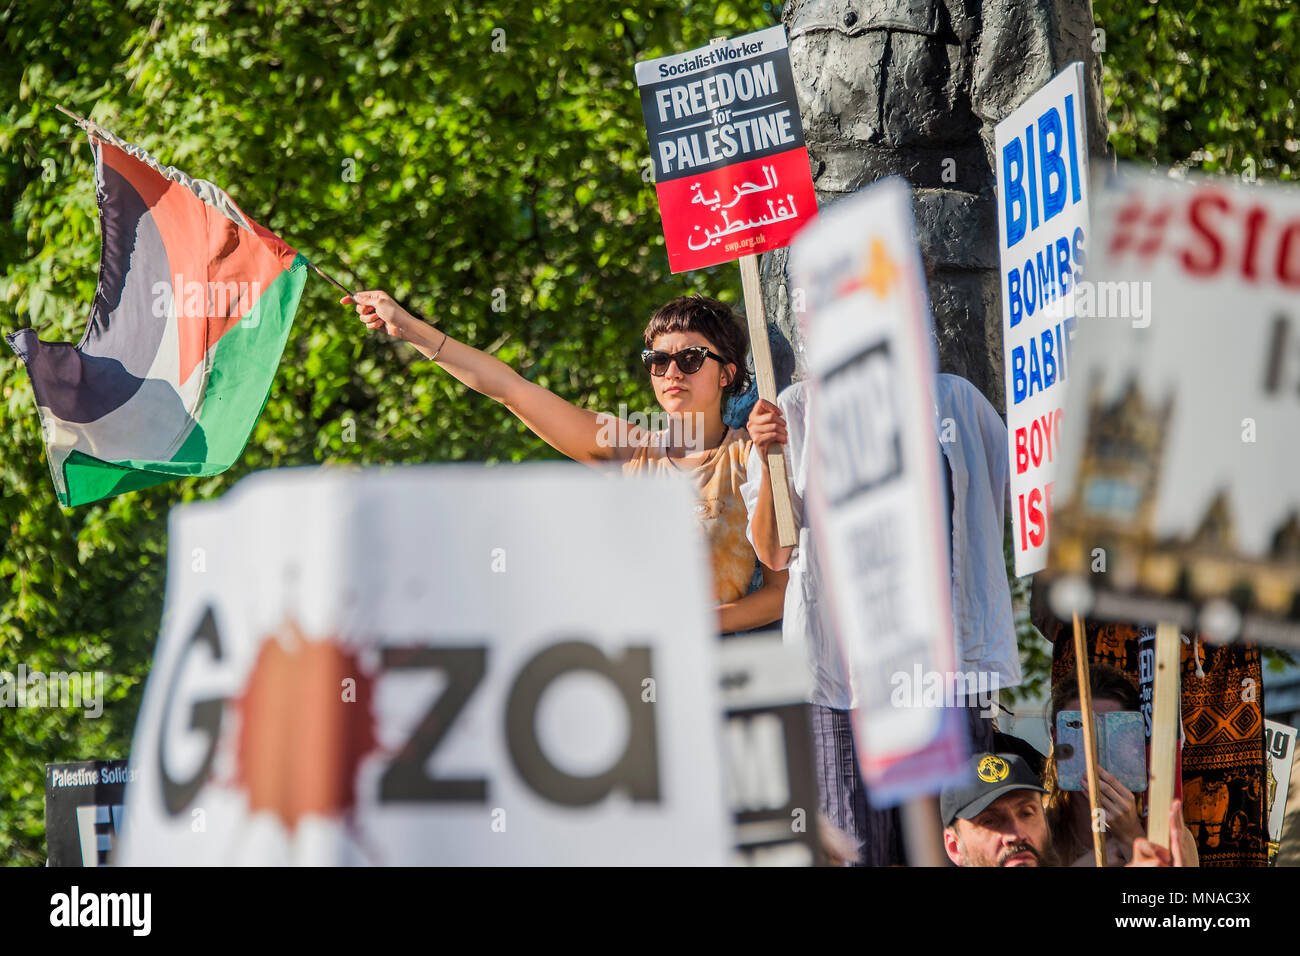 London, UK. 15th May 2018. A protest in support of Palestine and against teh Israeli shootings on the border. Organised by Stop the war opposite Downing Street, in an attempt to get the government to condemn israel. Credit: Guy Bell/Alamy Live News - Stock Image